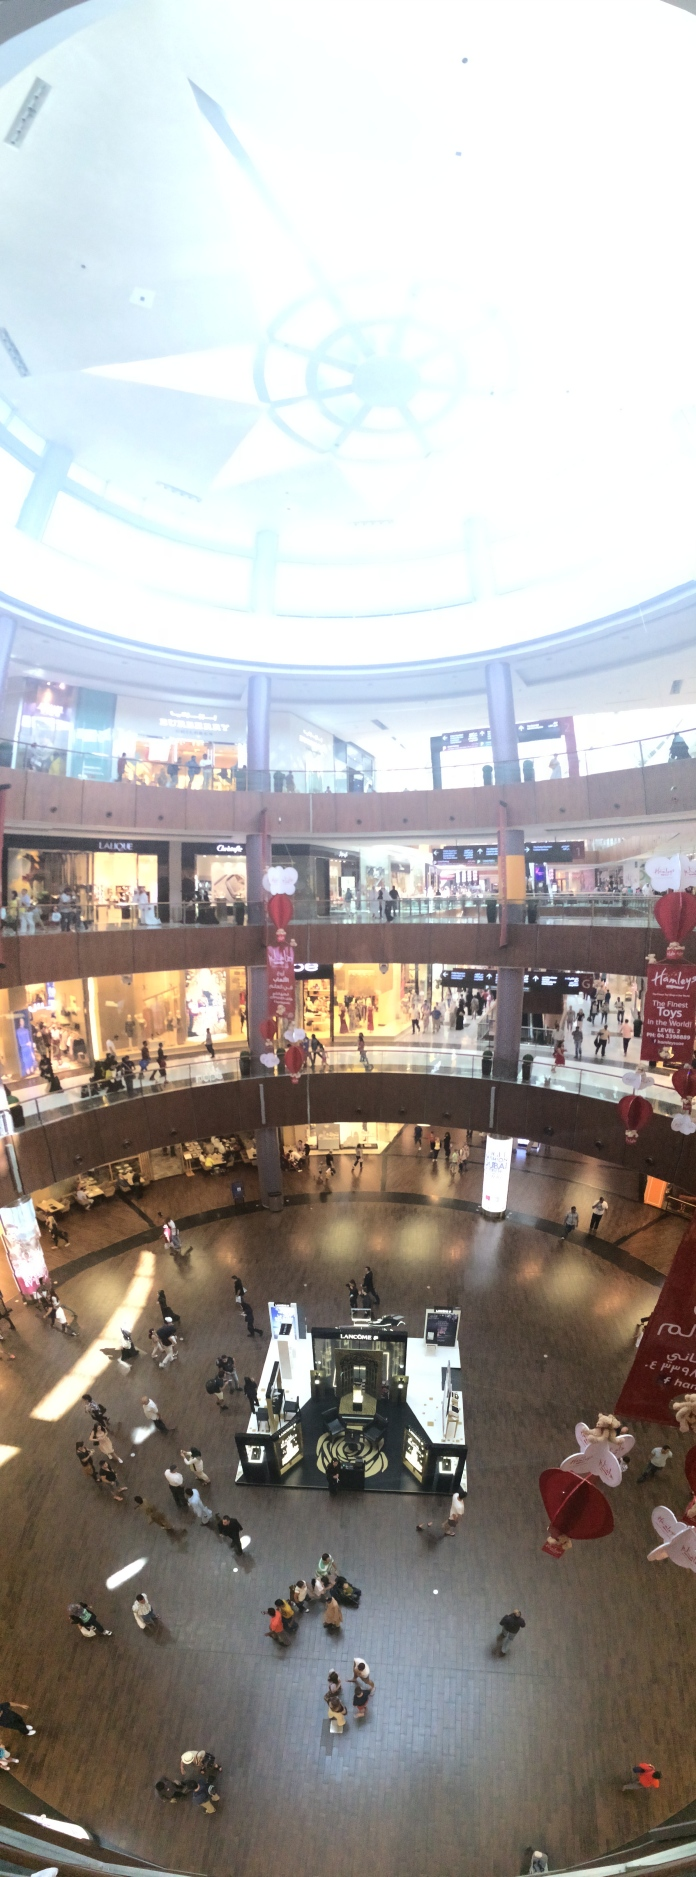 Dubai Mall - the biggest in the world - this shot was a teeny tiny corner. It was very weird seeing M&Co and Waitrose